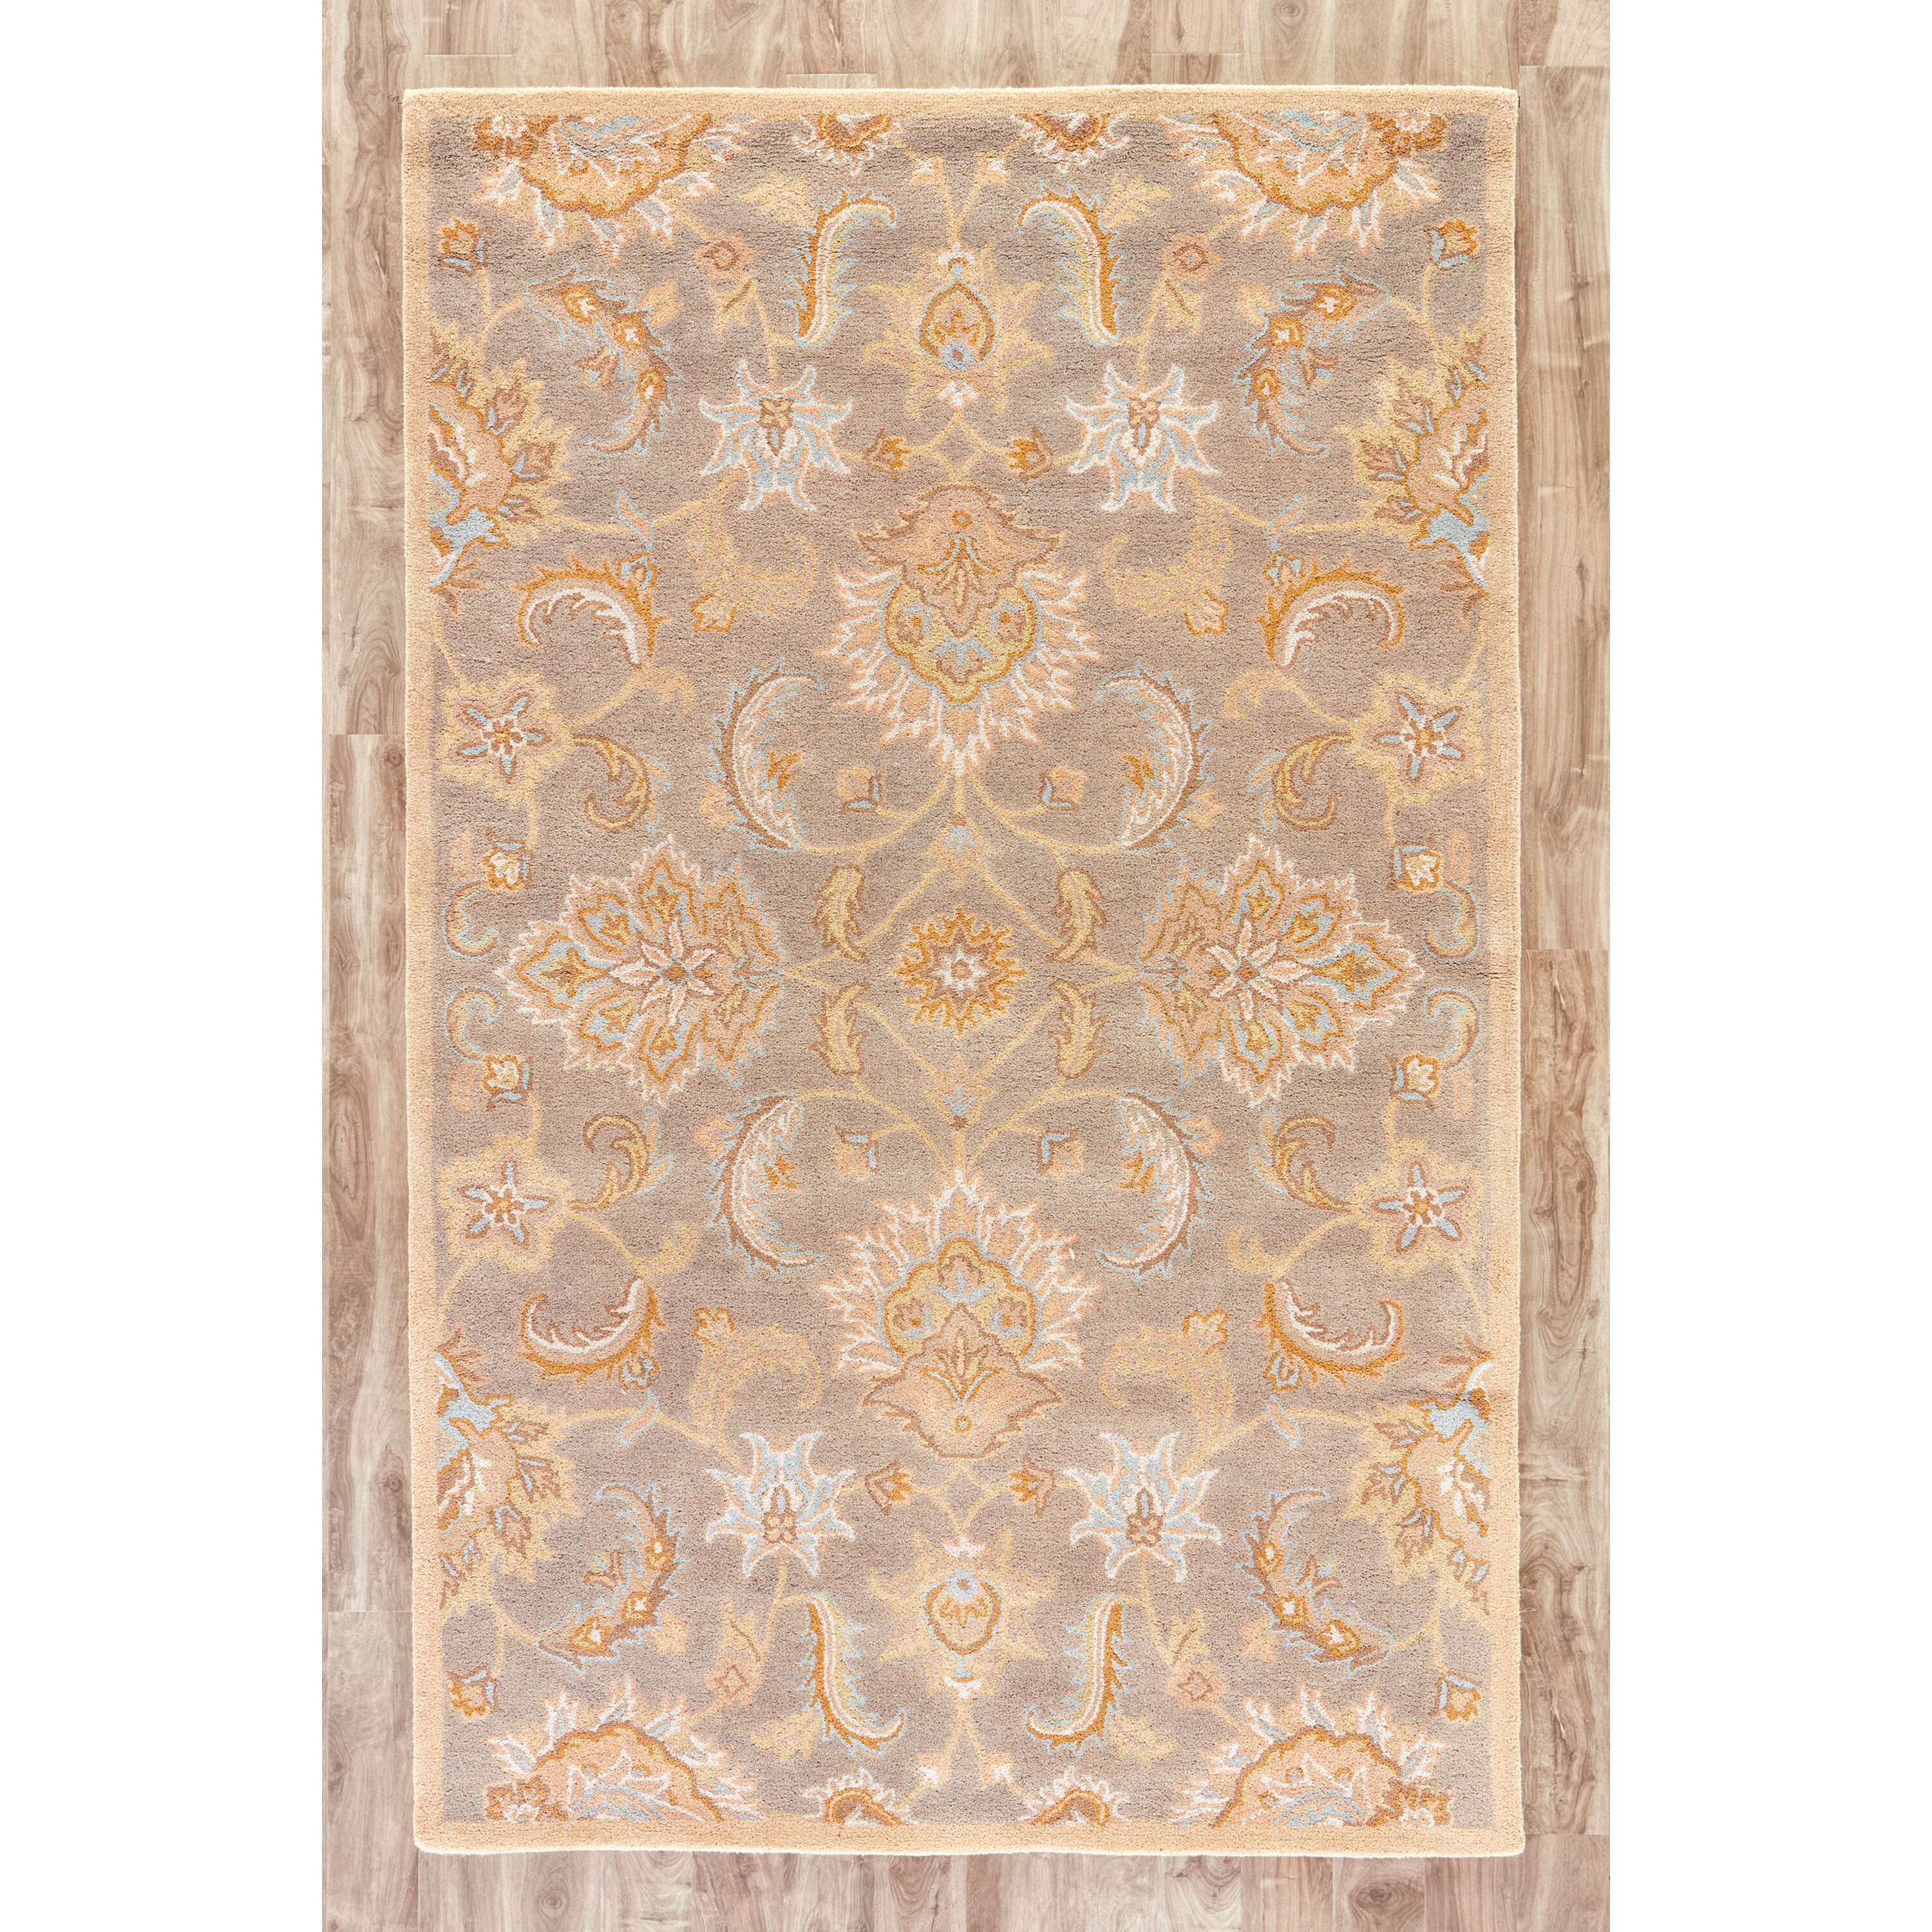 Jaipurliving mythos gray tan area rug reviews wayfair for Grey and tan rug